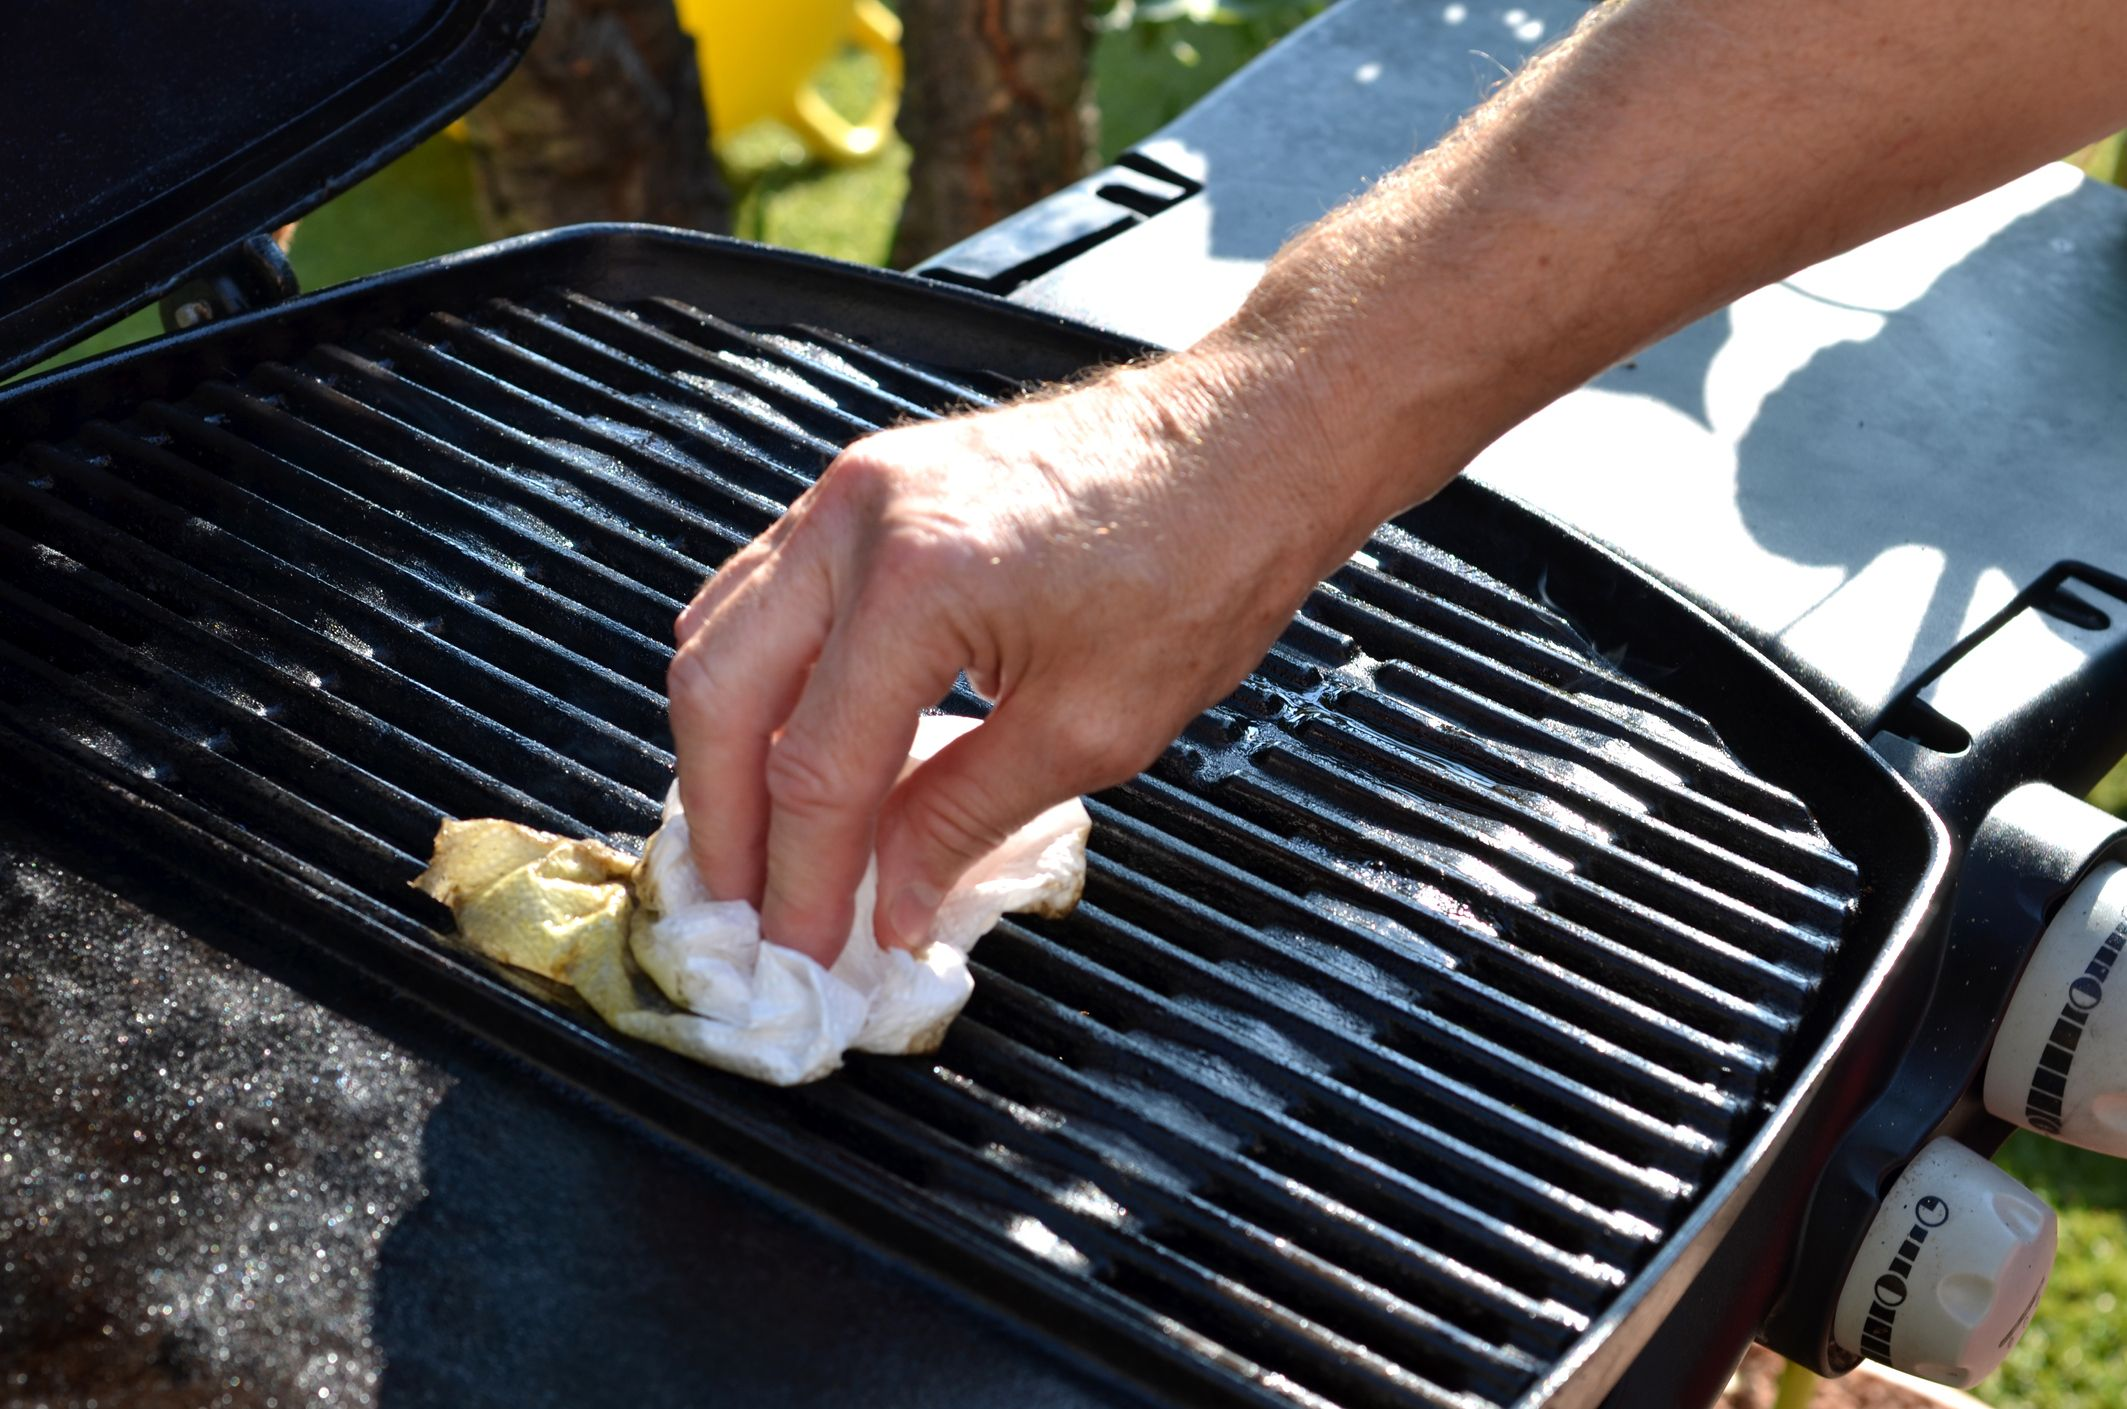 How to Clean Infrared Grills